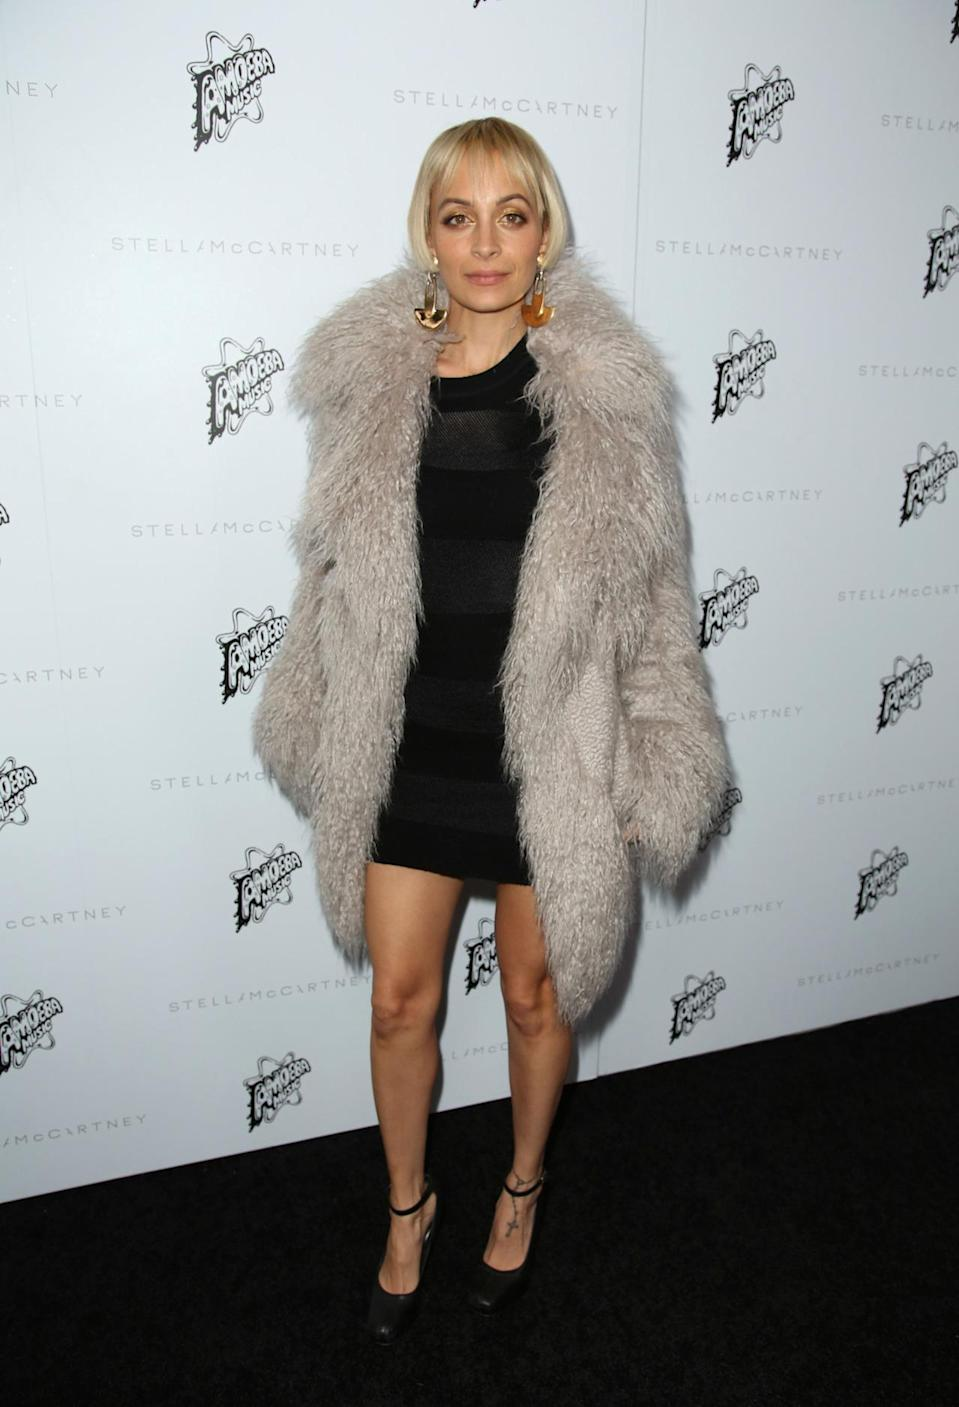 <p>Trust Nicole Richie to look completely fabulous. The former reality star looked as fierce as ever in a LBD with a shaggy overcoat.<i> [Photo: Rex]</i></p>